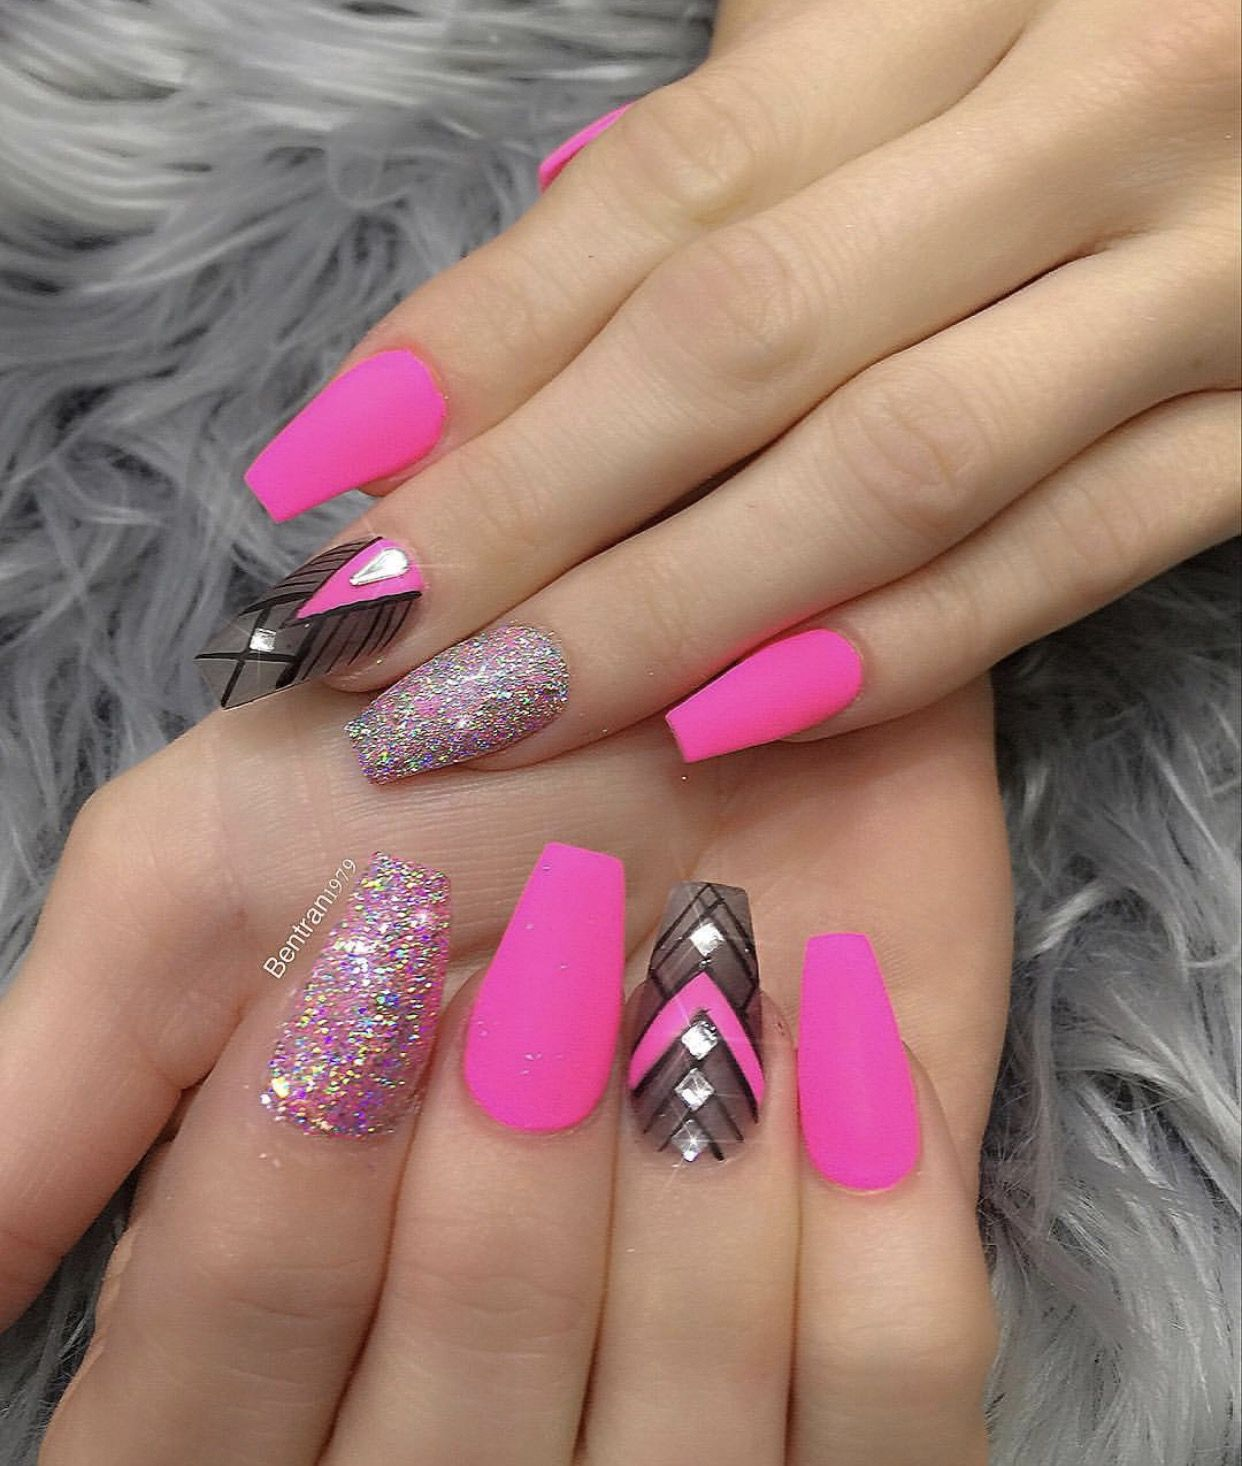 Pin by Odalys Hernandez on Nails | Pinterest | Nail shop, Matte ...